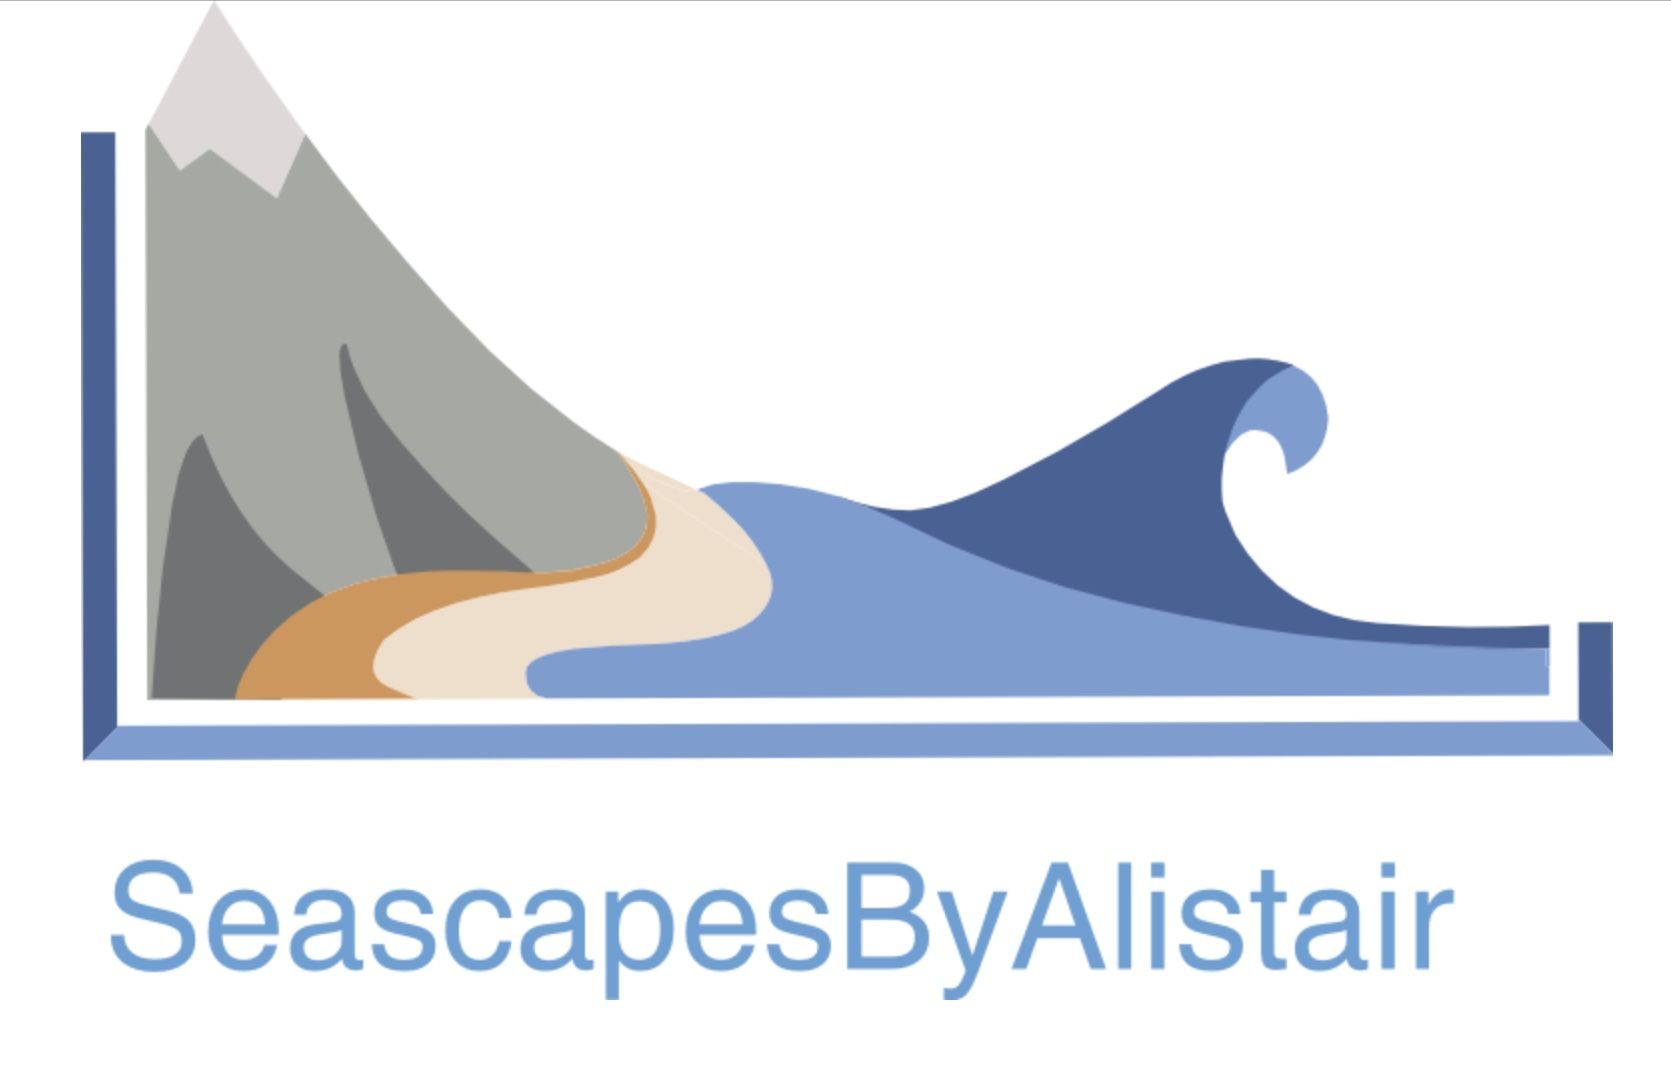 SeascapesByAlistair